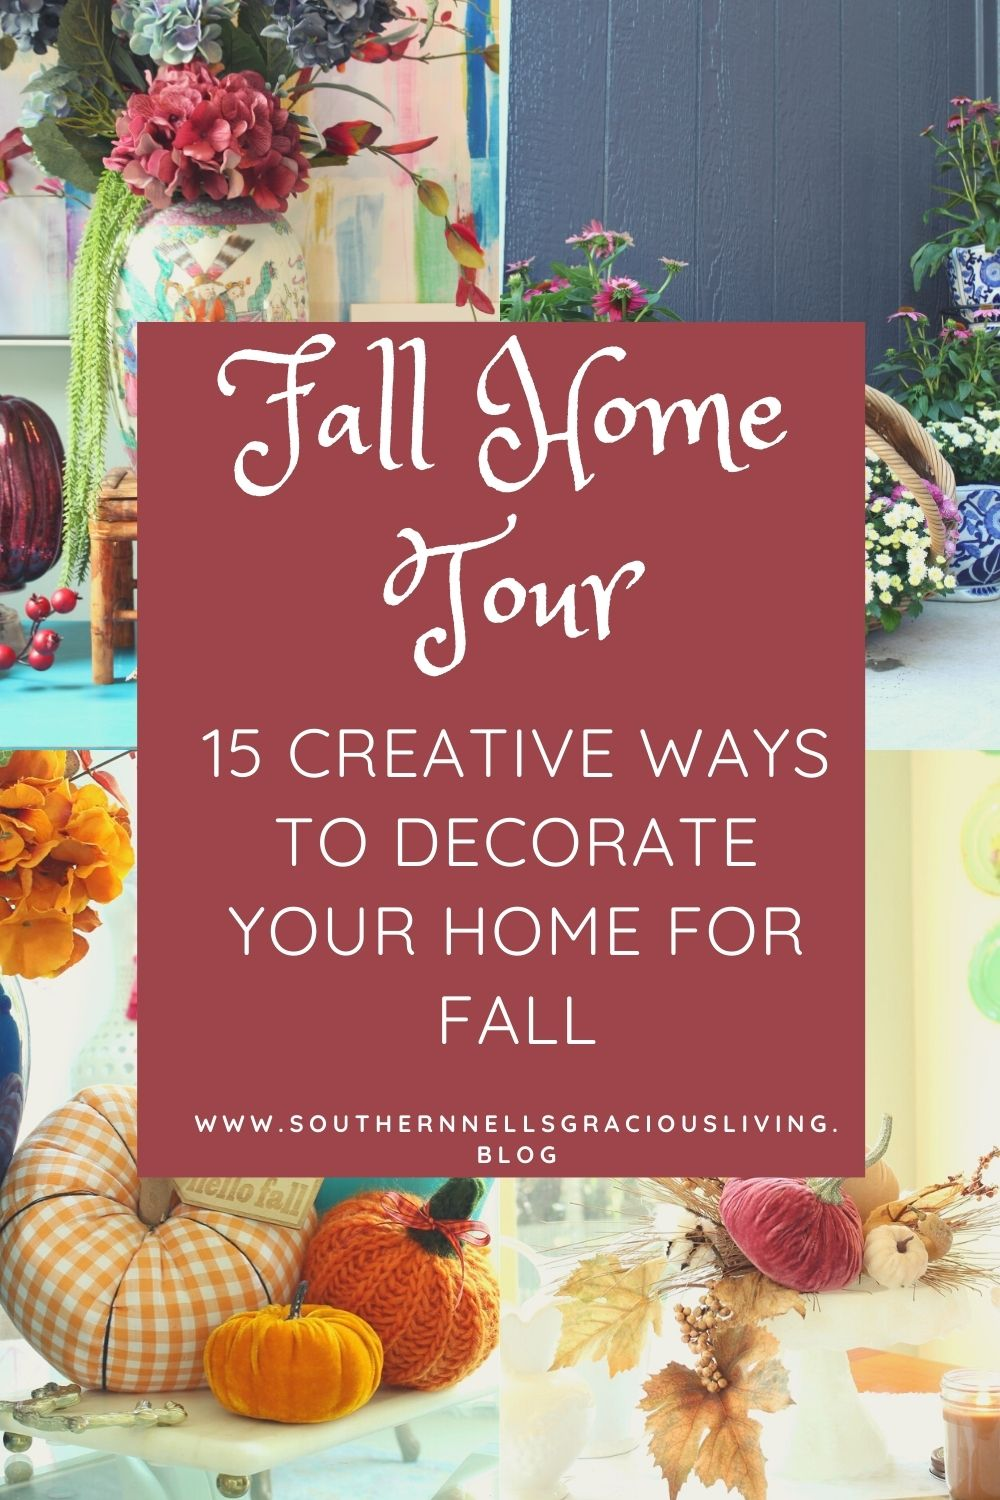 Ideas for Decorating Your Home for Fall